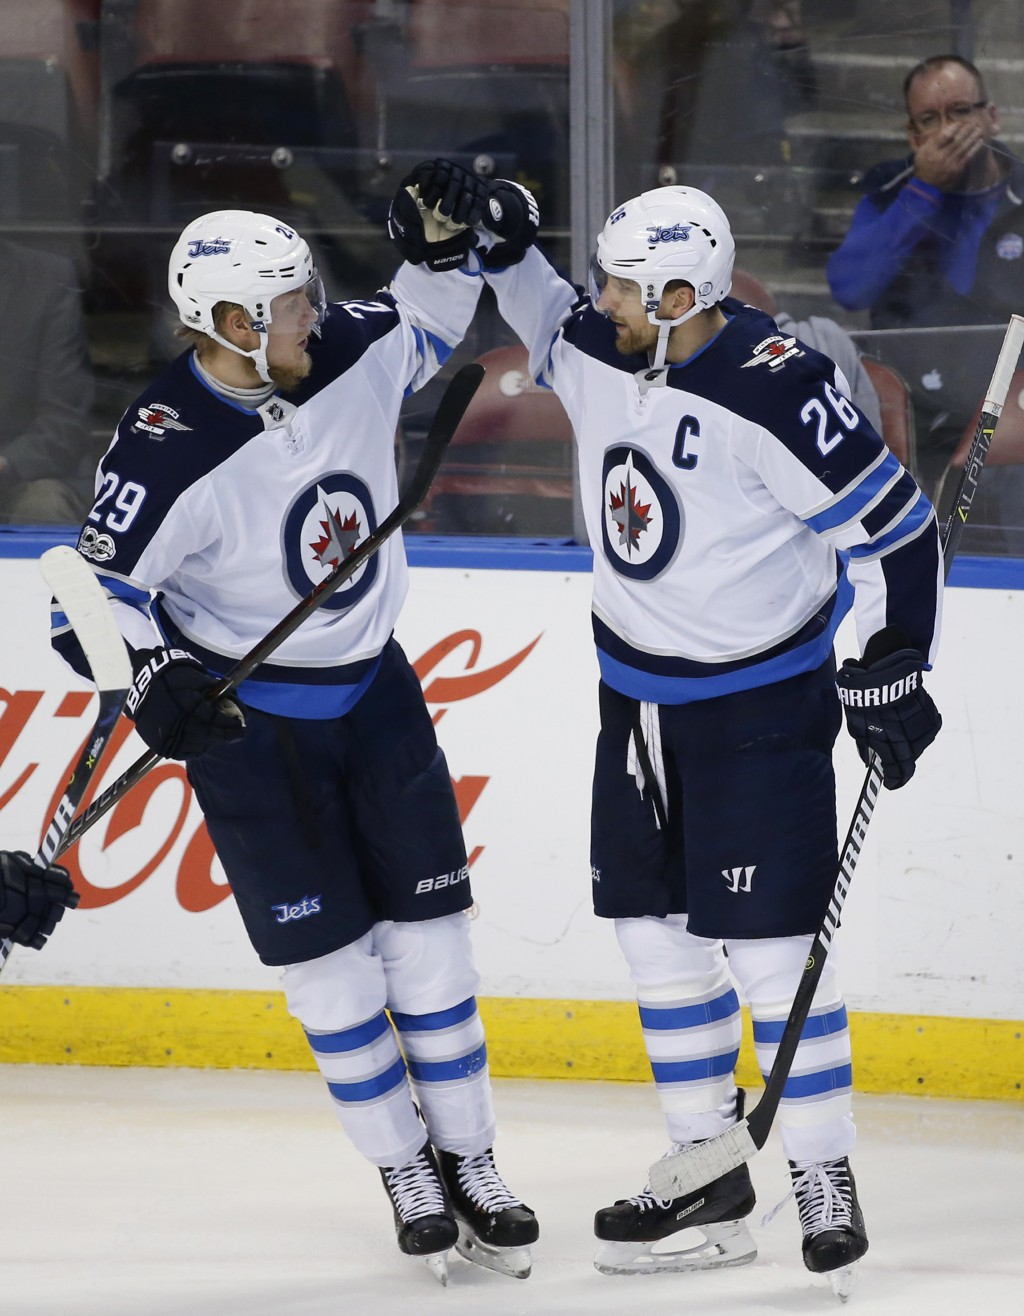 Winnipeg Jets right wing Patrik Laine (29) congratulates right wing Blake Wheeler (26) after Wheeler scored during the second period of an NHL hockey